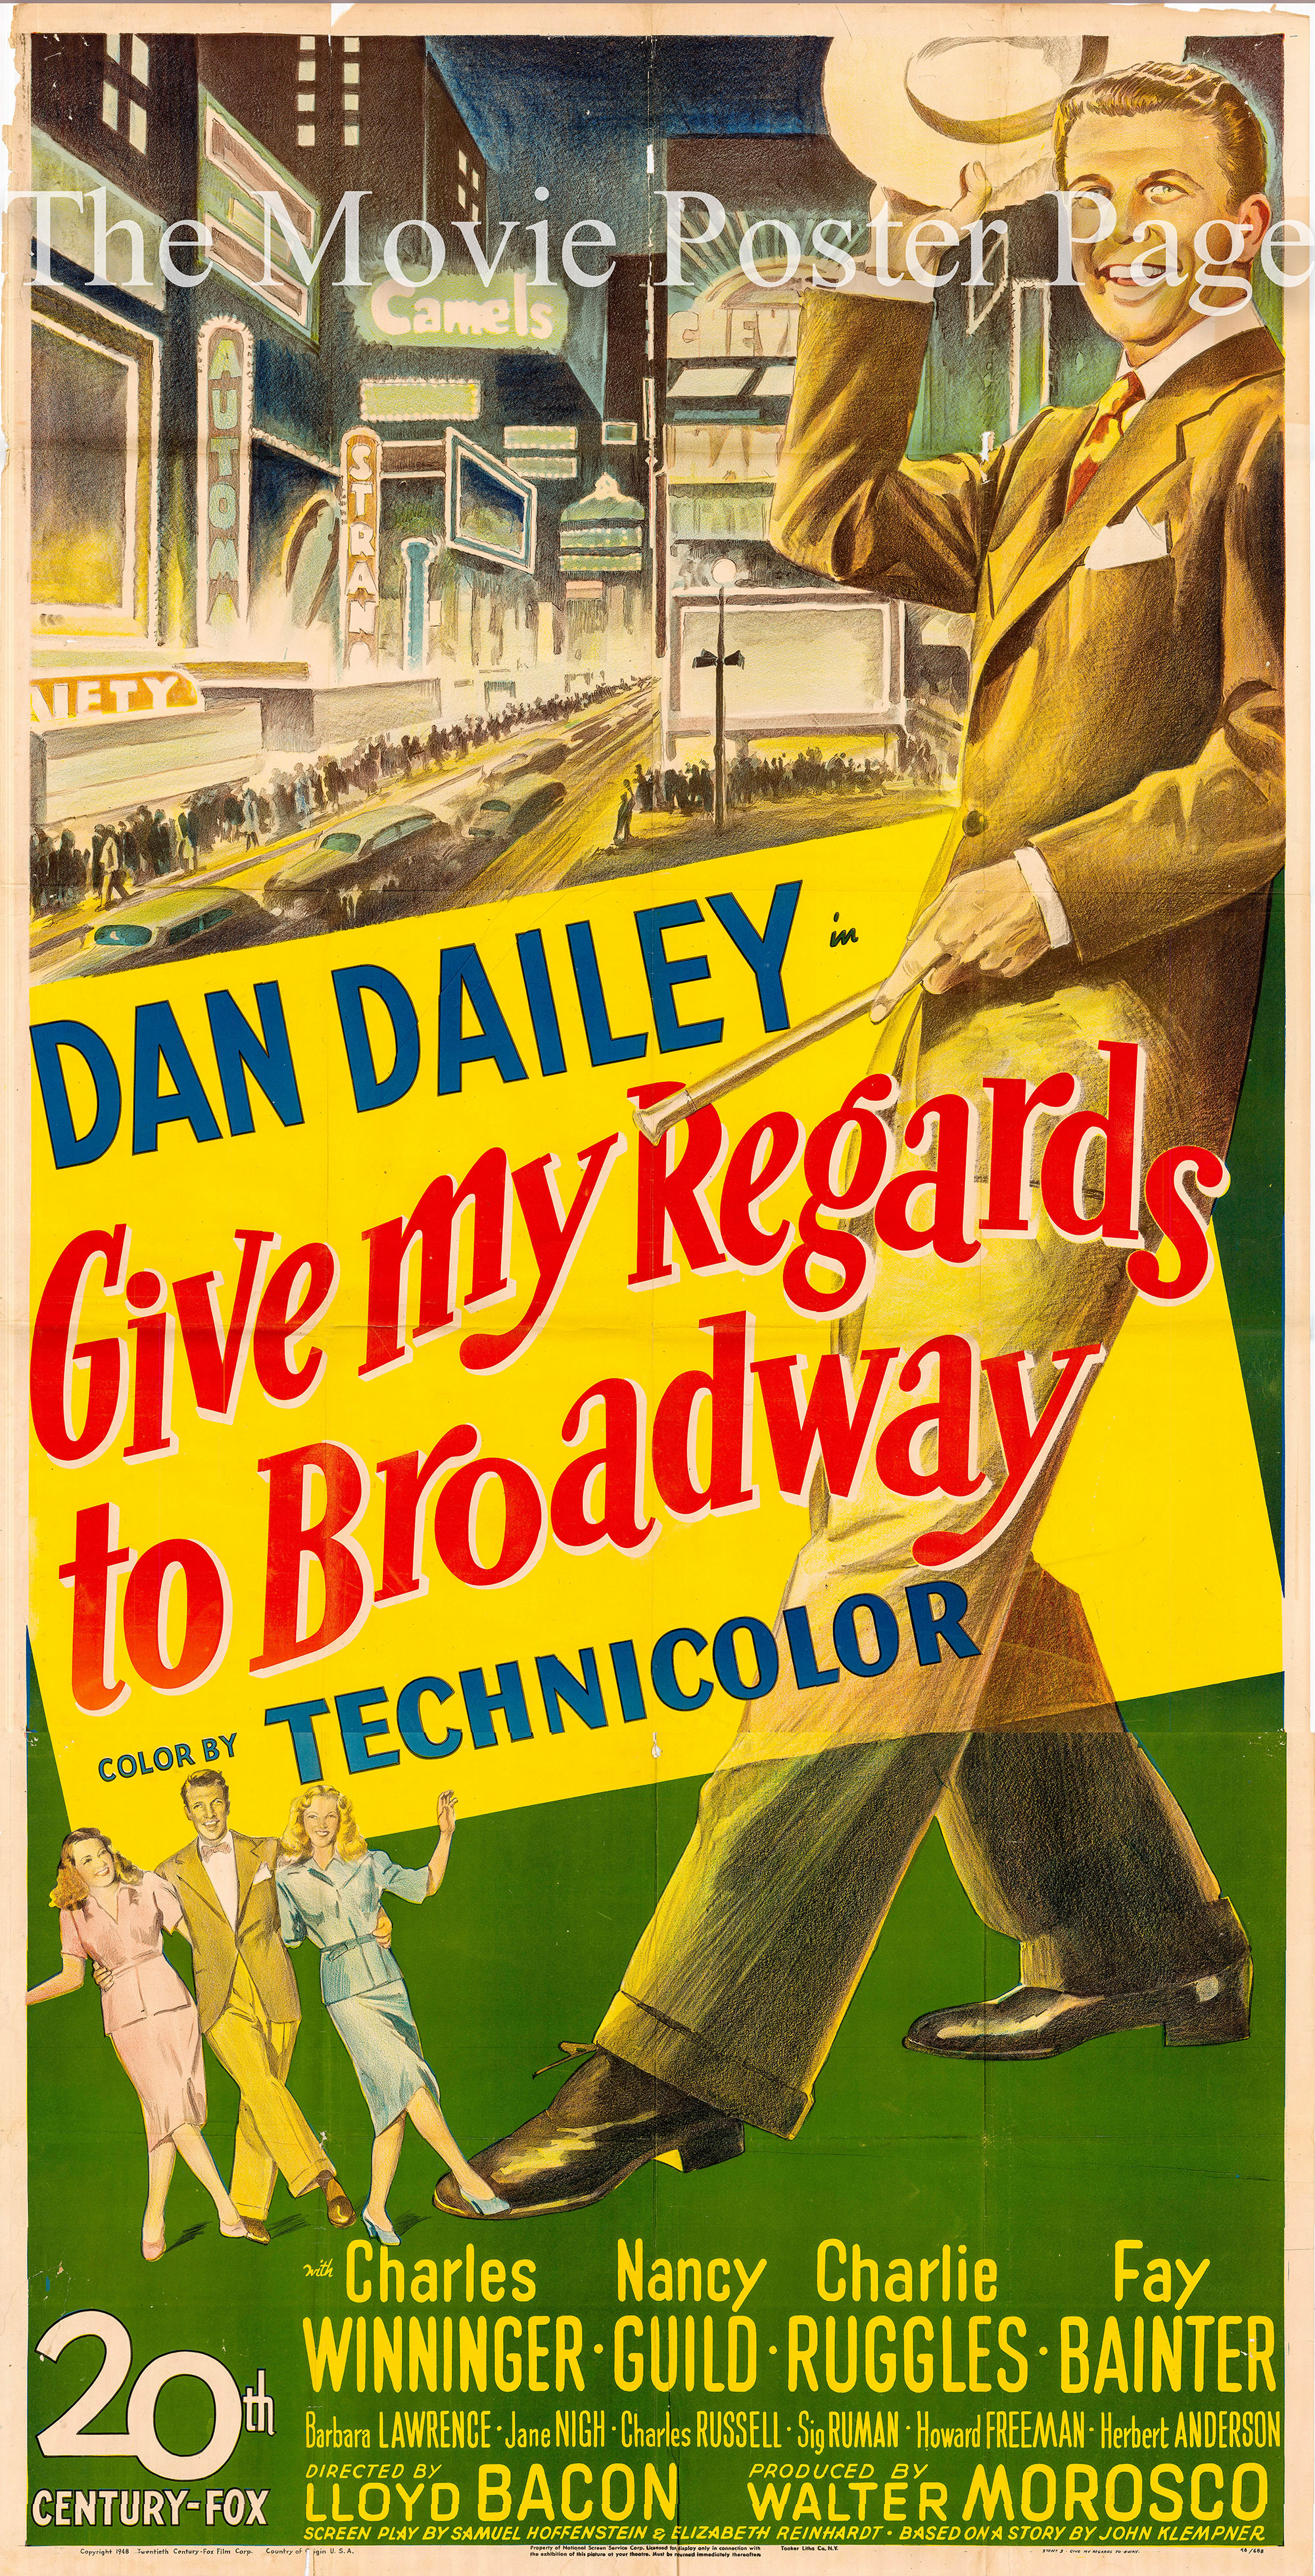 Pictured is a US three-sheet promotional poster for the 1948 Lloyd Bacon film Give My Regards to Broadway starring Dan Dailey.